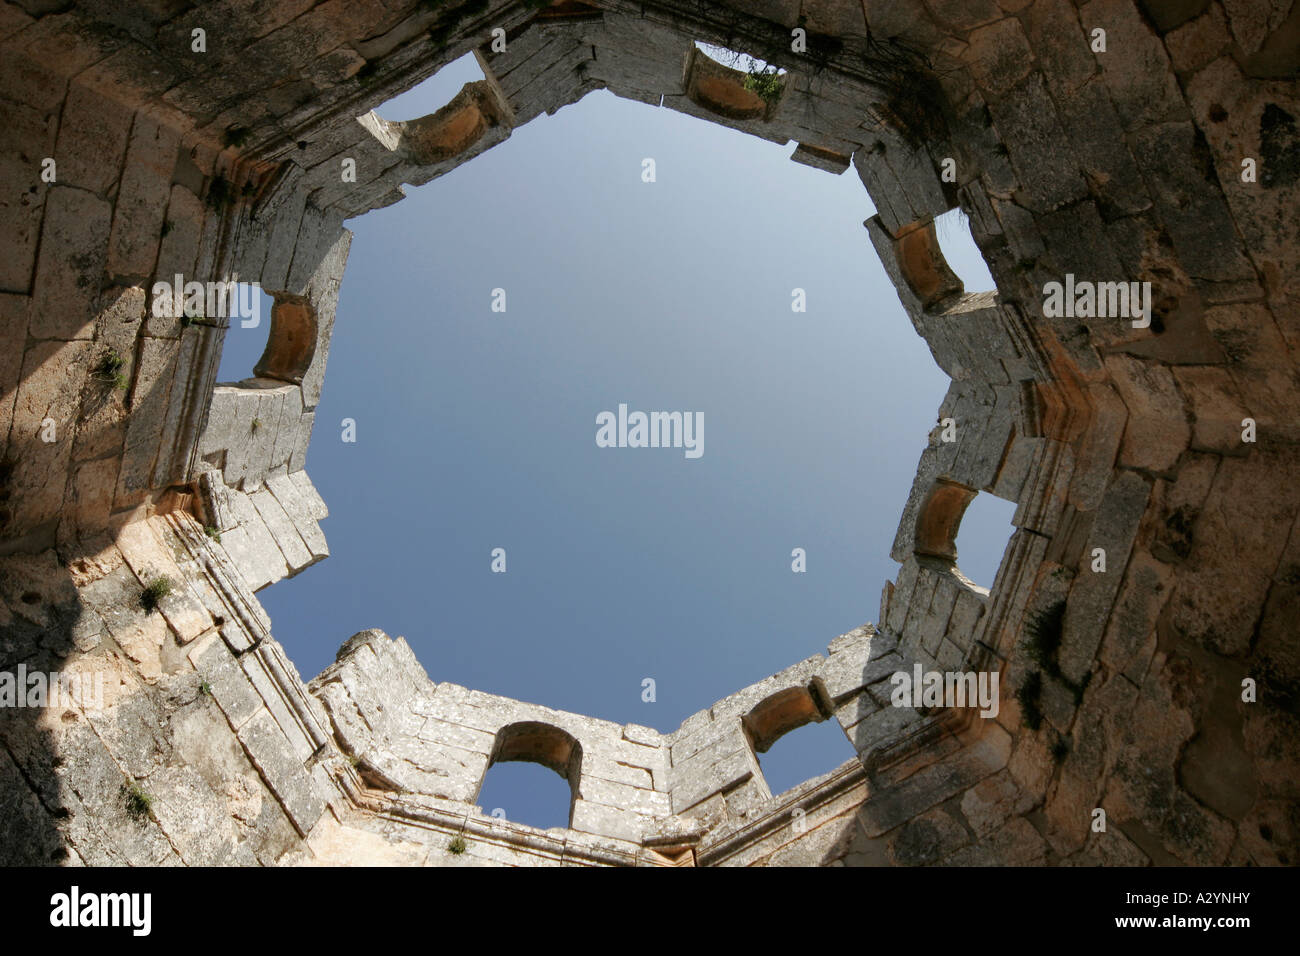 The roof of Basilica of St Simeon, Qalaat Samaan, Syria, Middle East - Stock Image